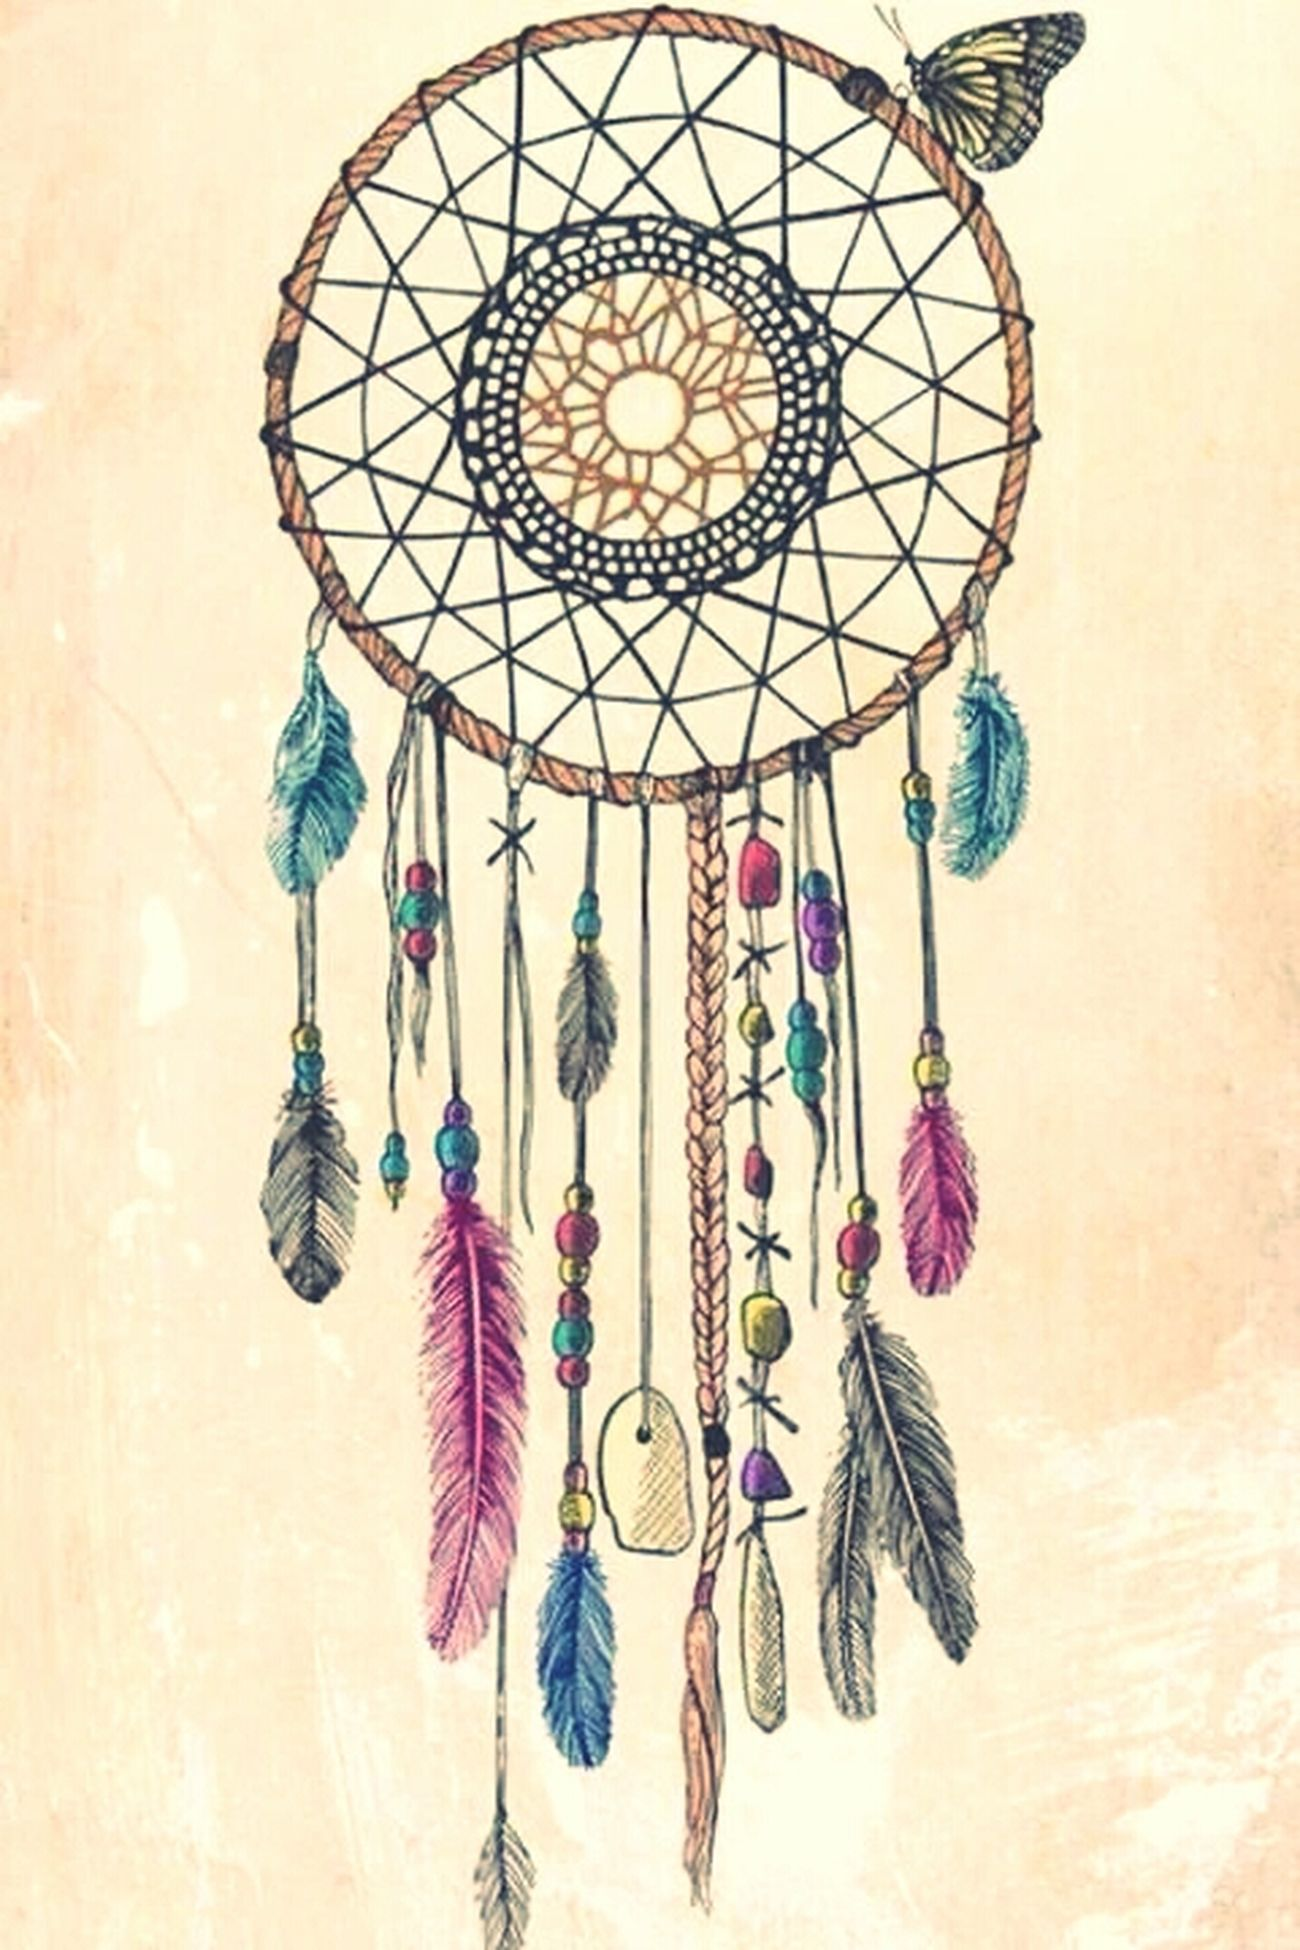 Injun Magic Talisman